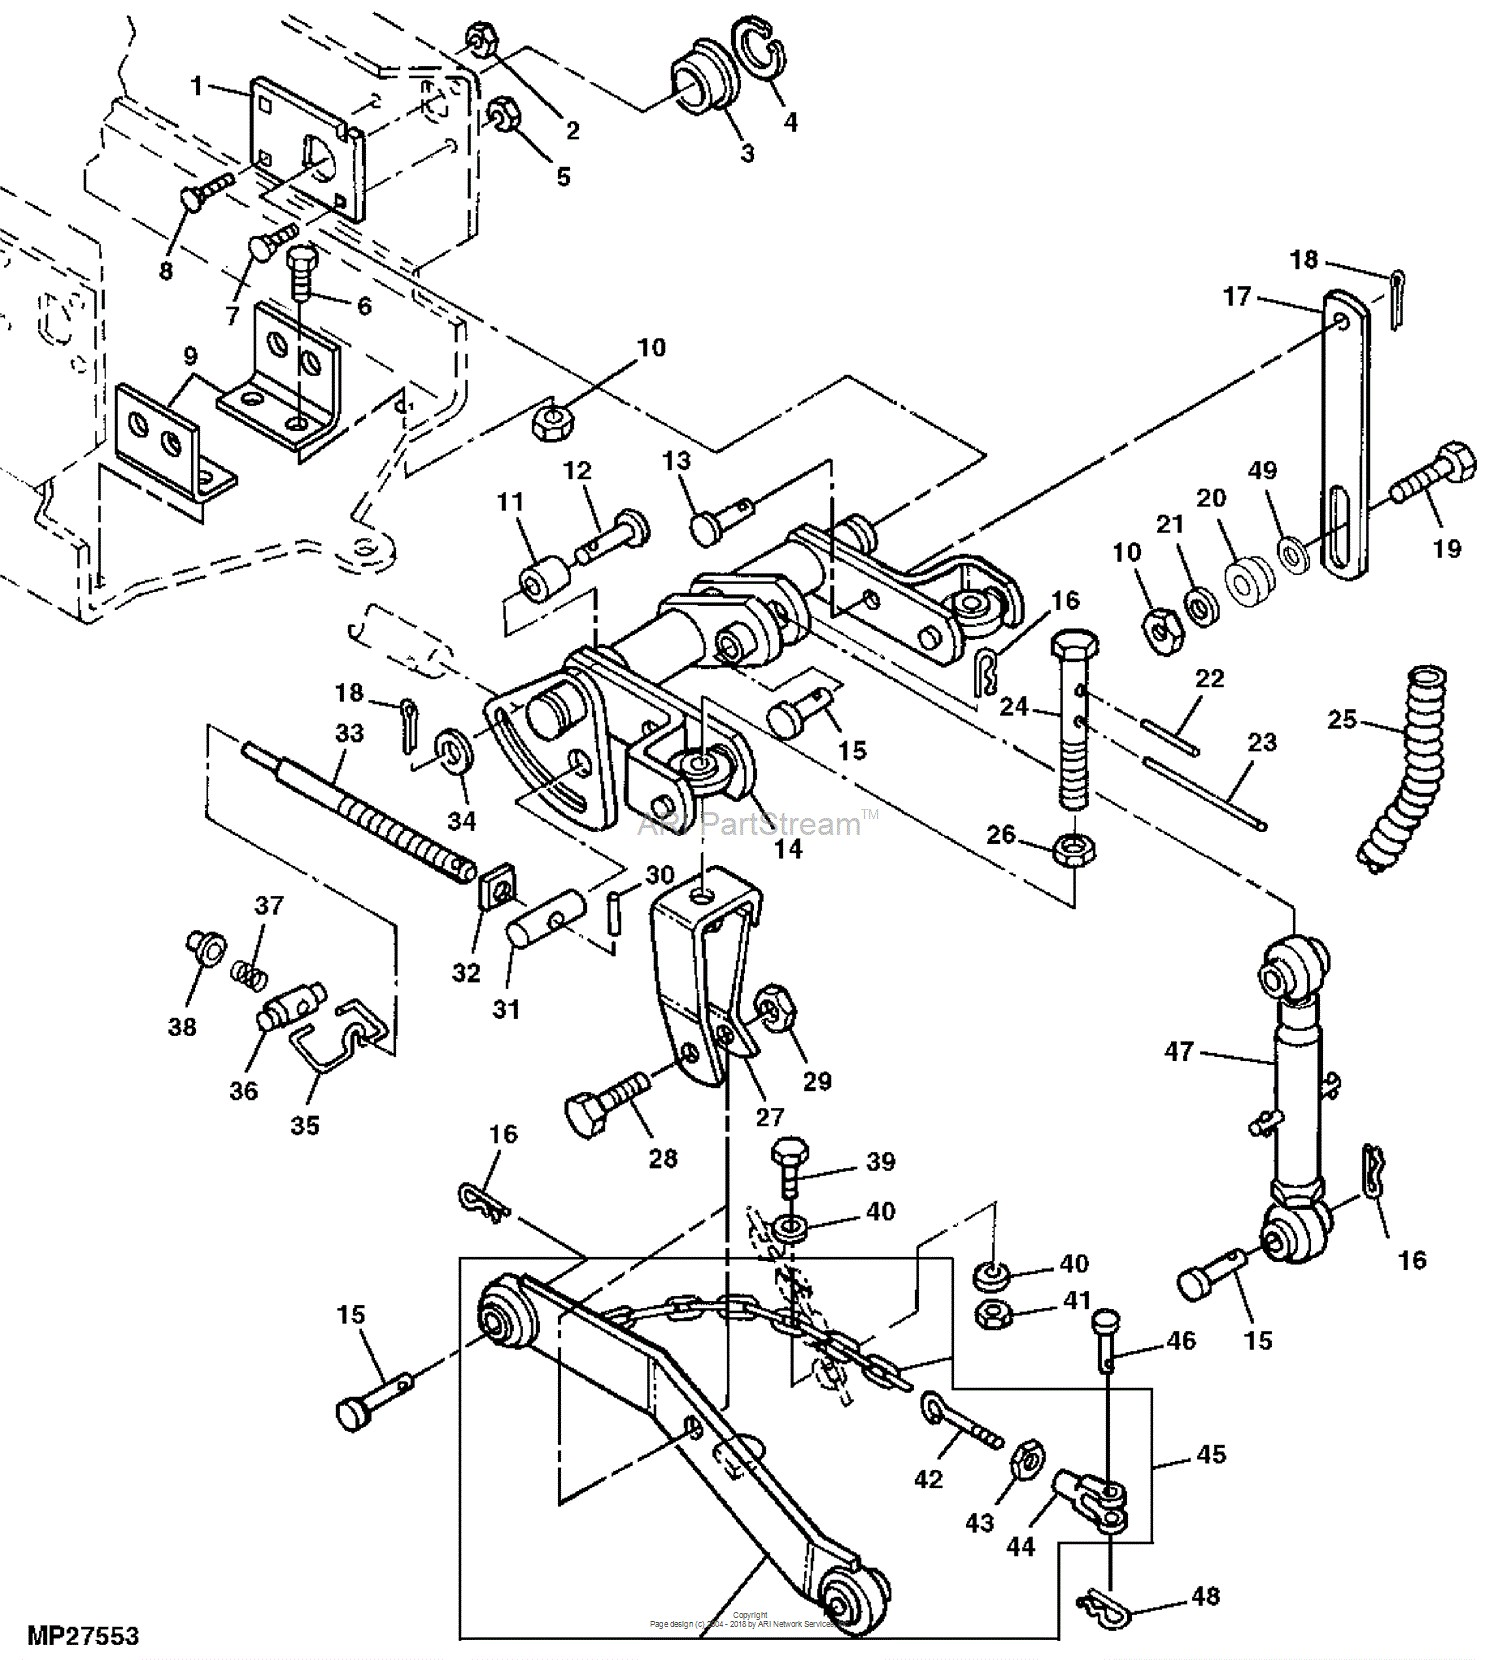 John Deere Parts Diagrams John Deere X465 Garden Tractor PC9109